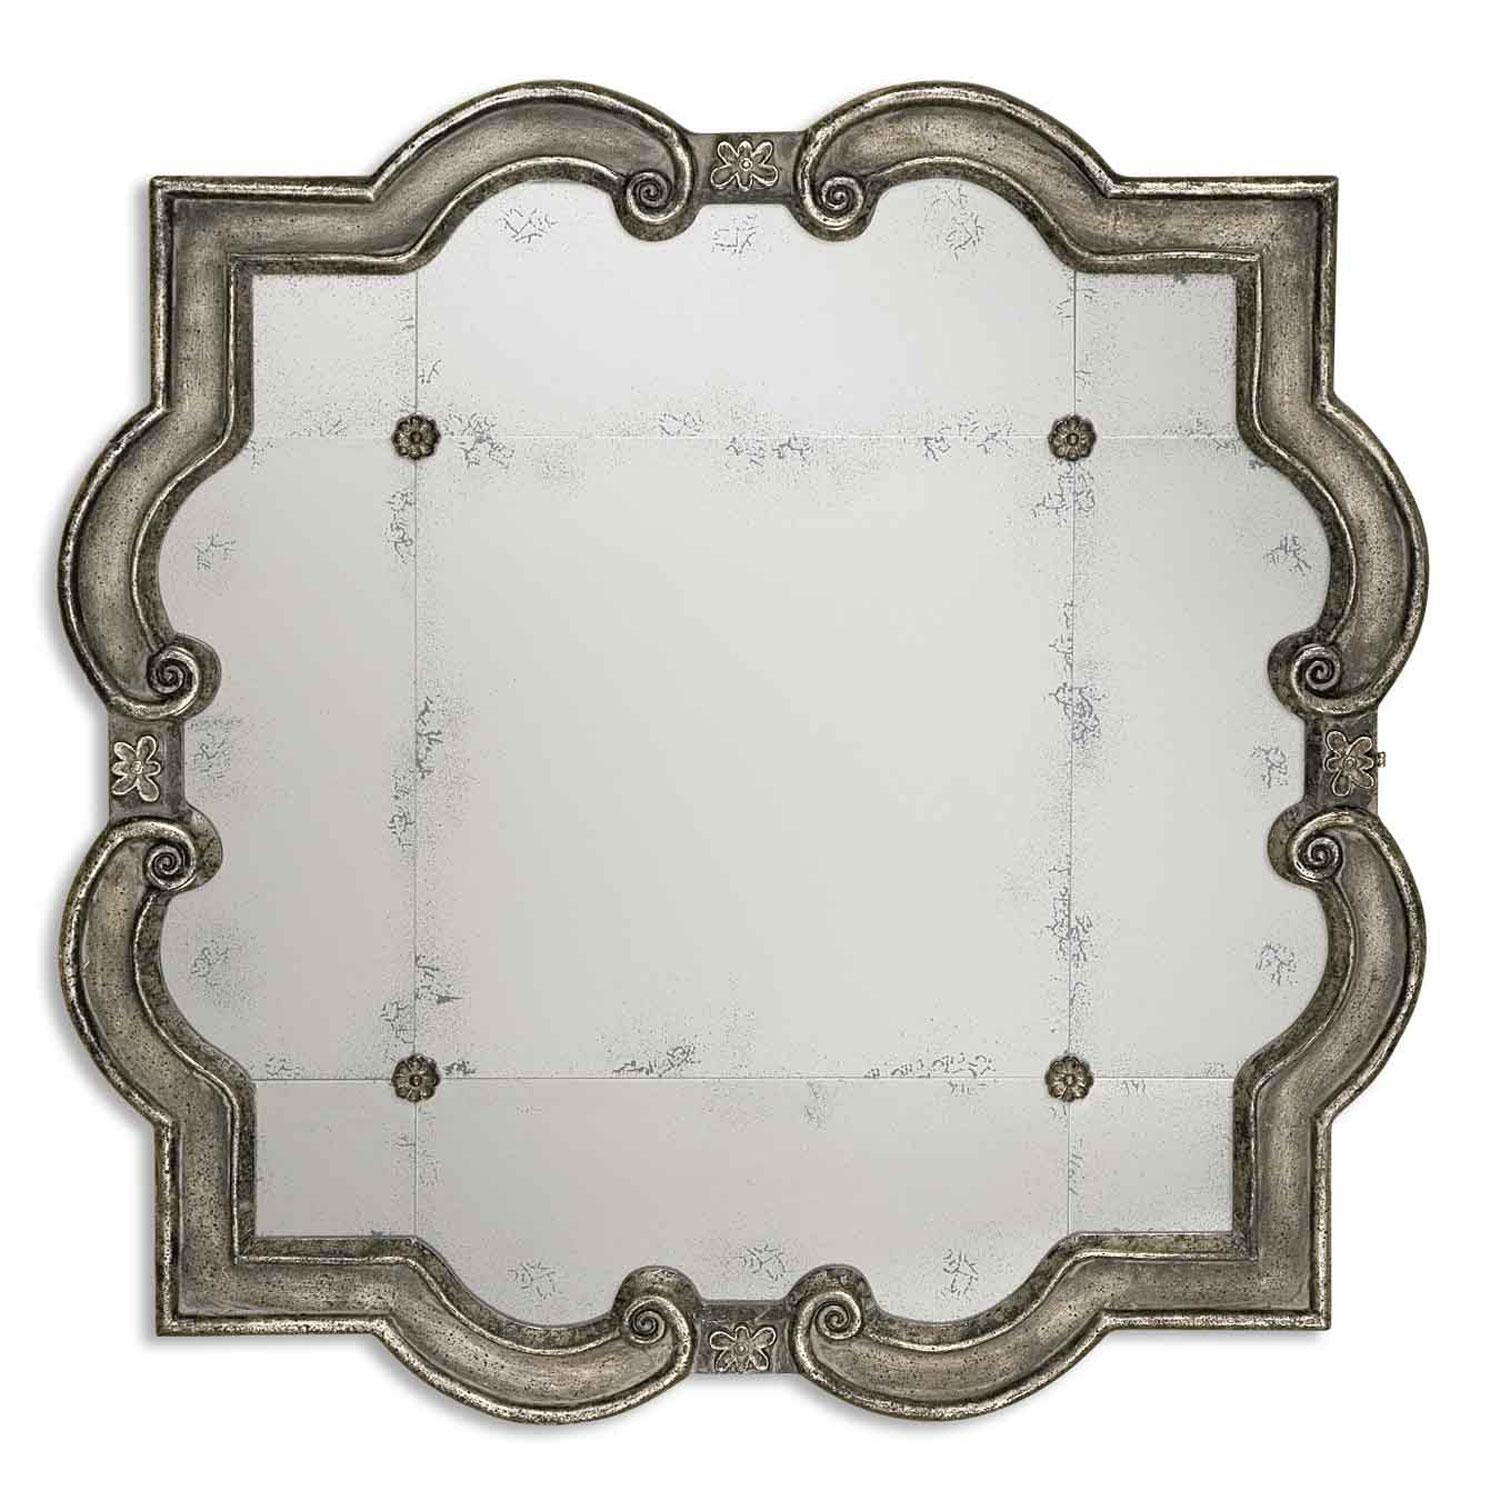 Old World Mirrors | Bellacor For Ornate Bathroom Mirror (View 12 of 20)